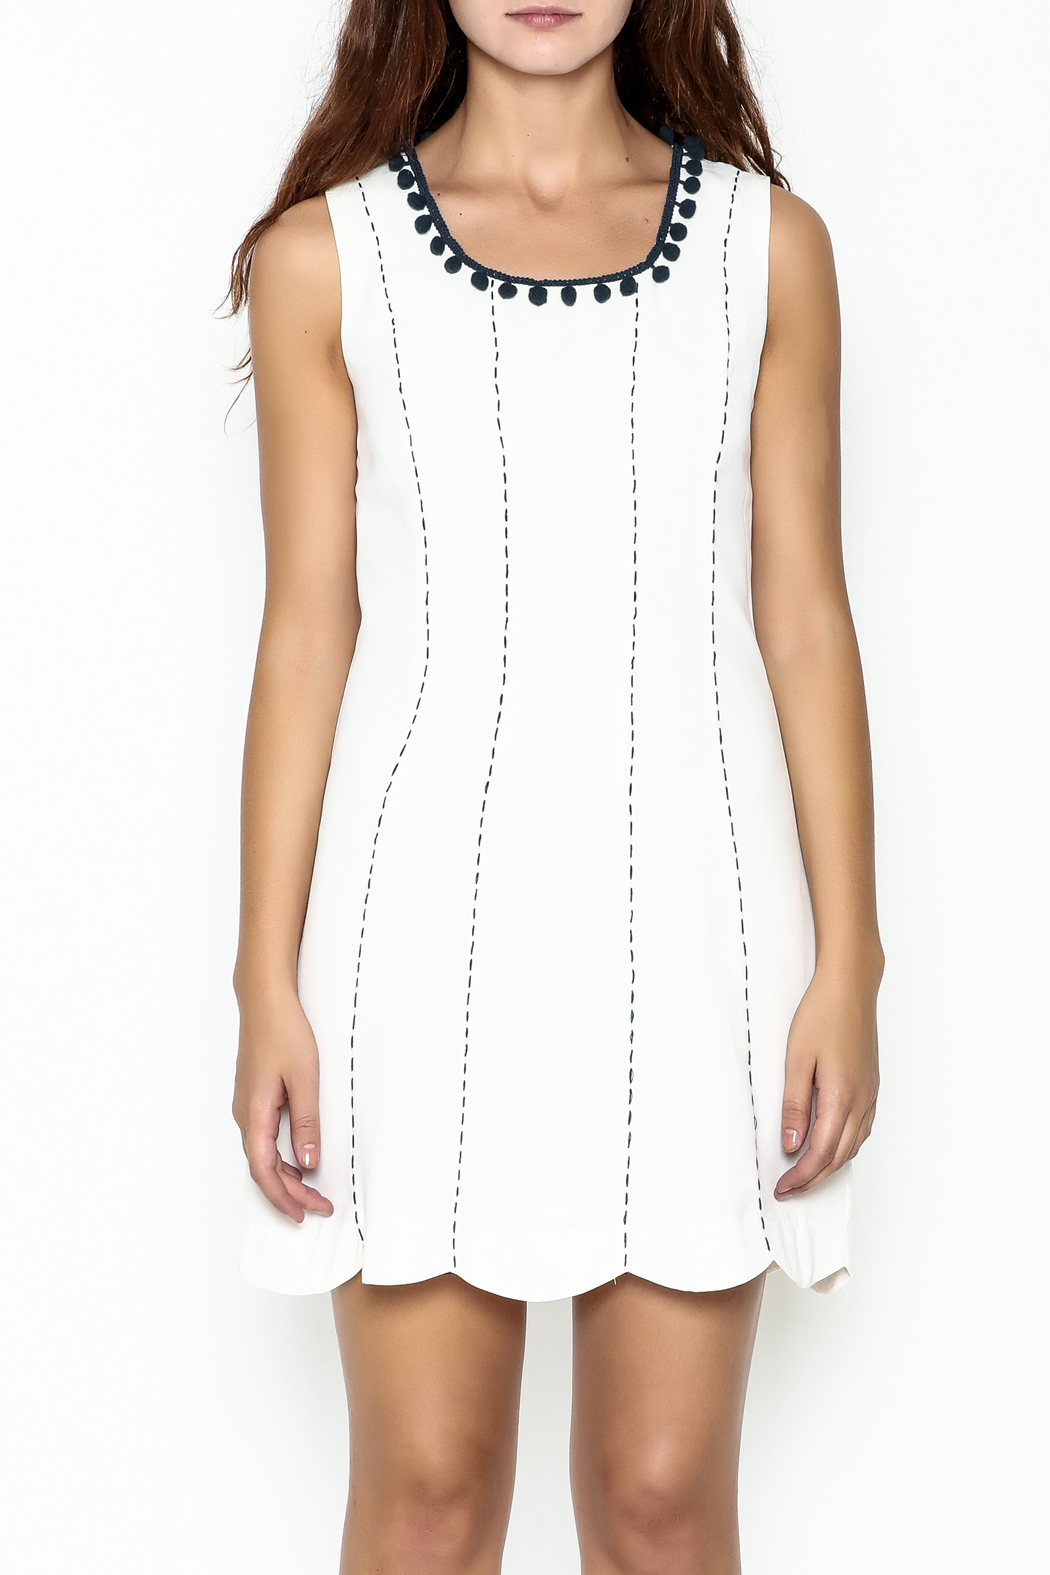 Esley Pretty Navy Details Dress - Front Full Image